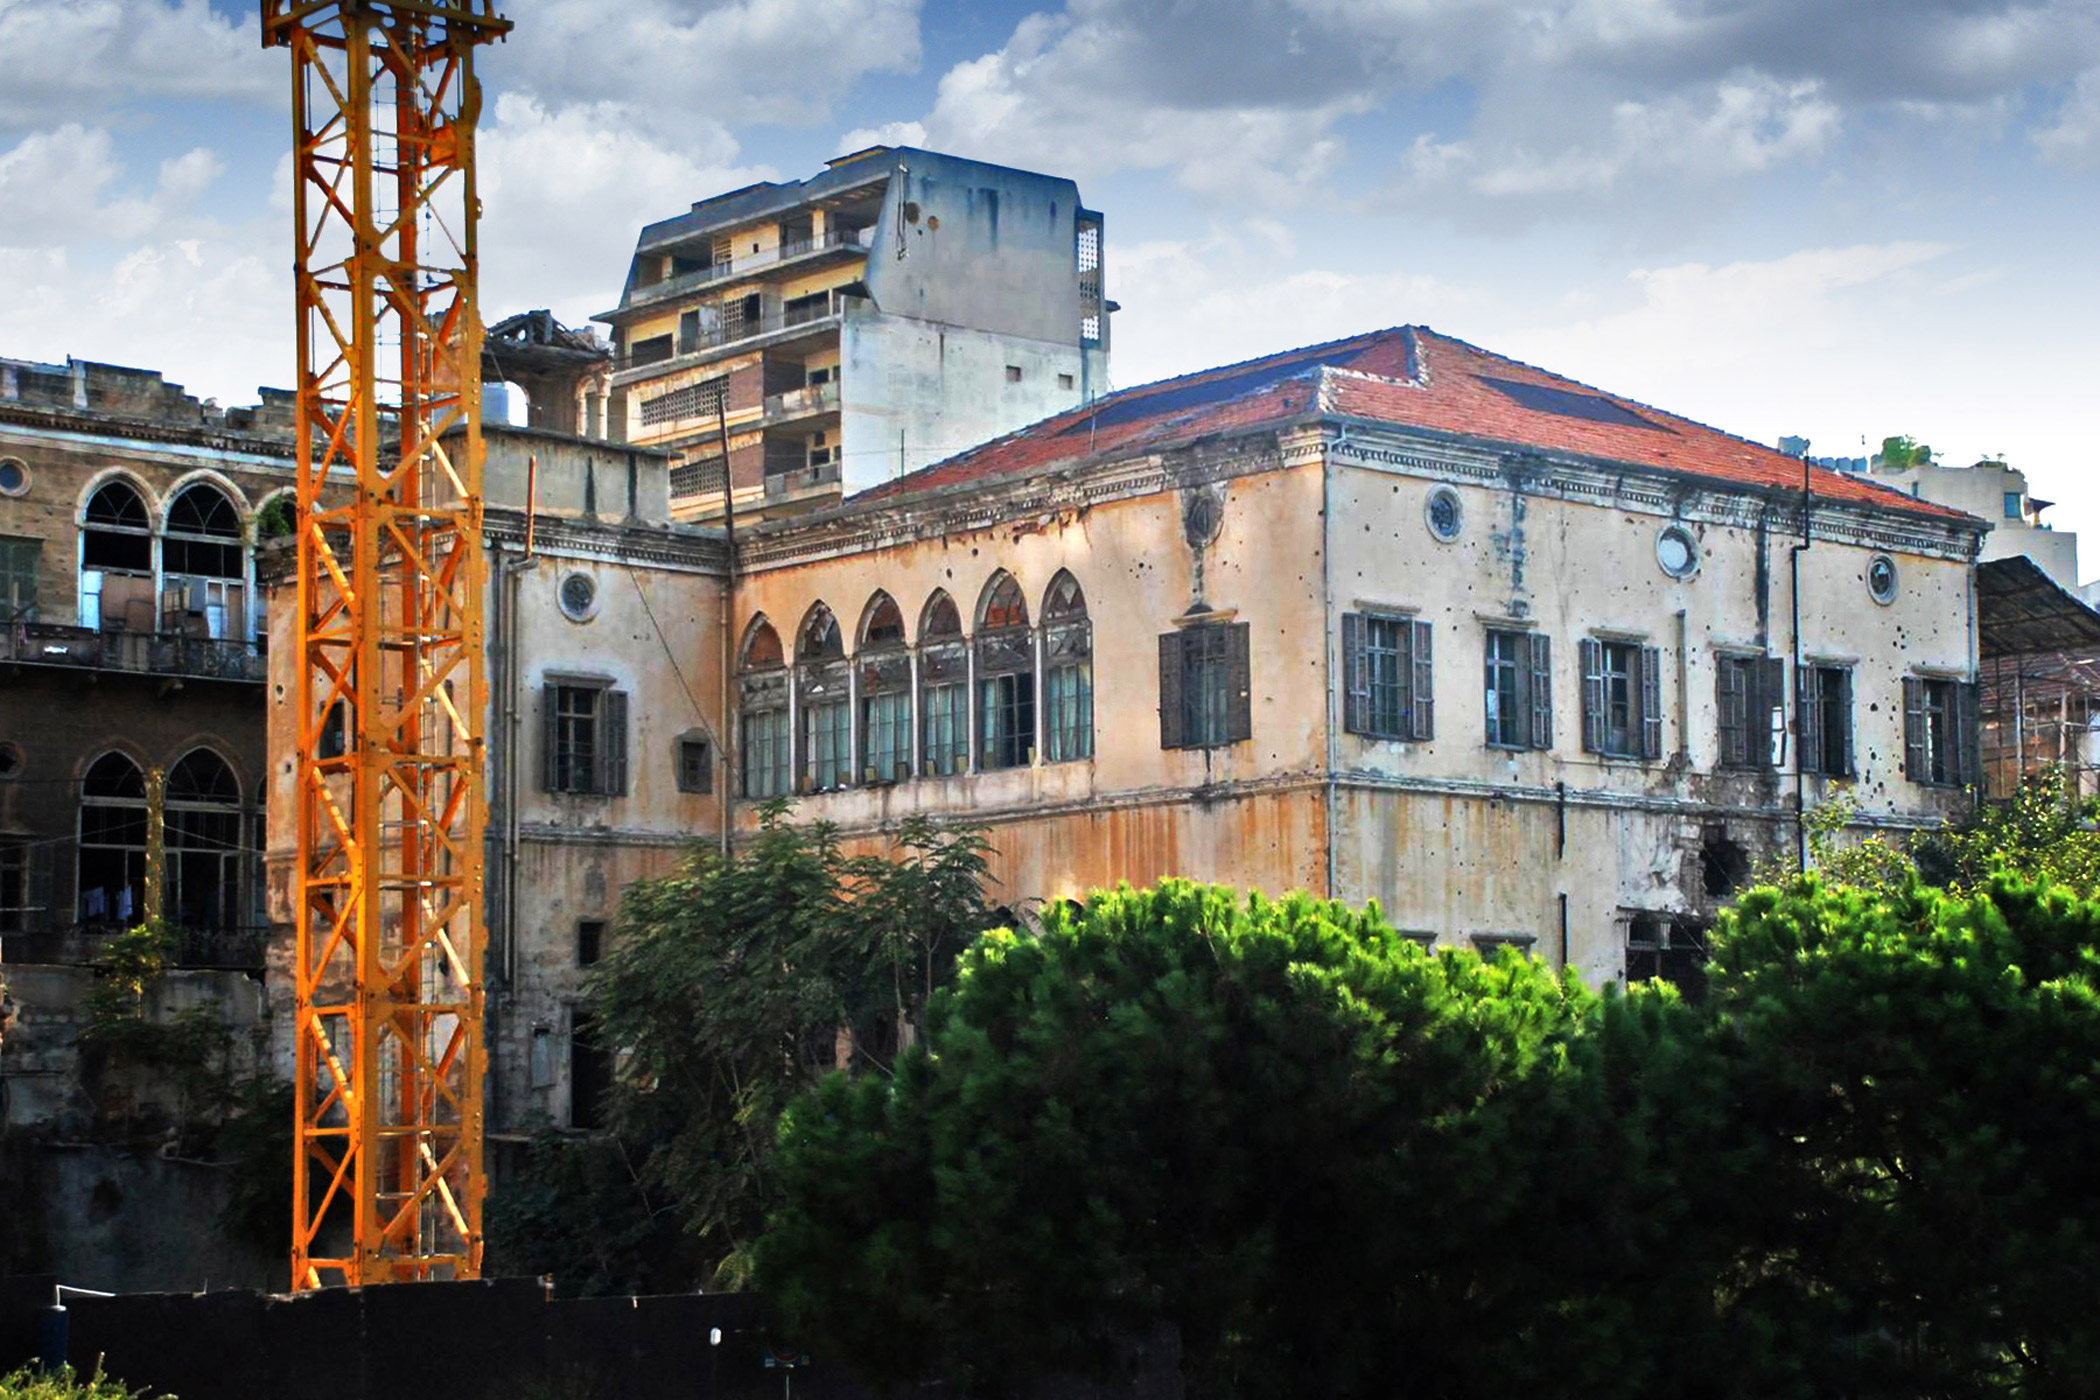 Lebanon, Heneine                               Palace: is a landmark of Beirut that deserves to be preserved and put into public use so that it can be enjoyed by all, but instead it is at risk of being torn down and lost forever.